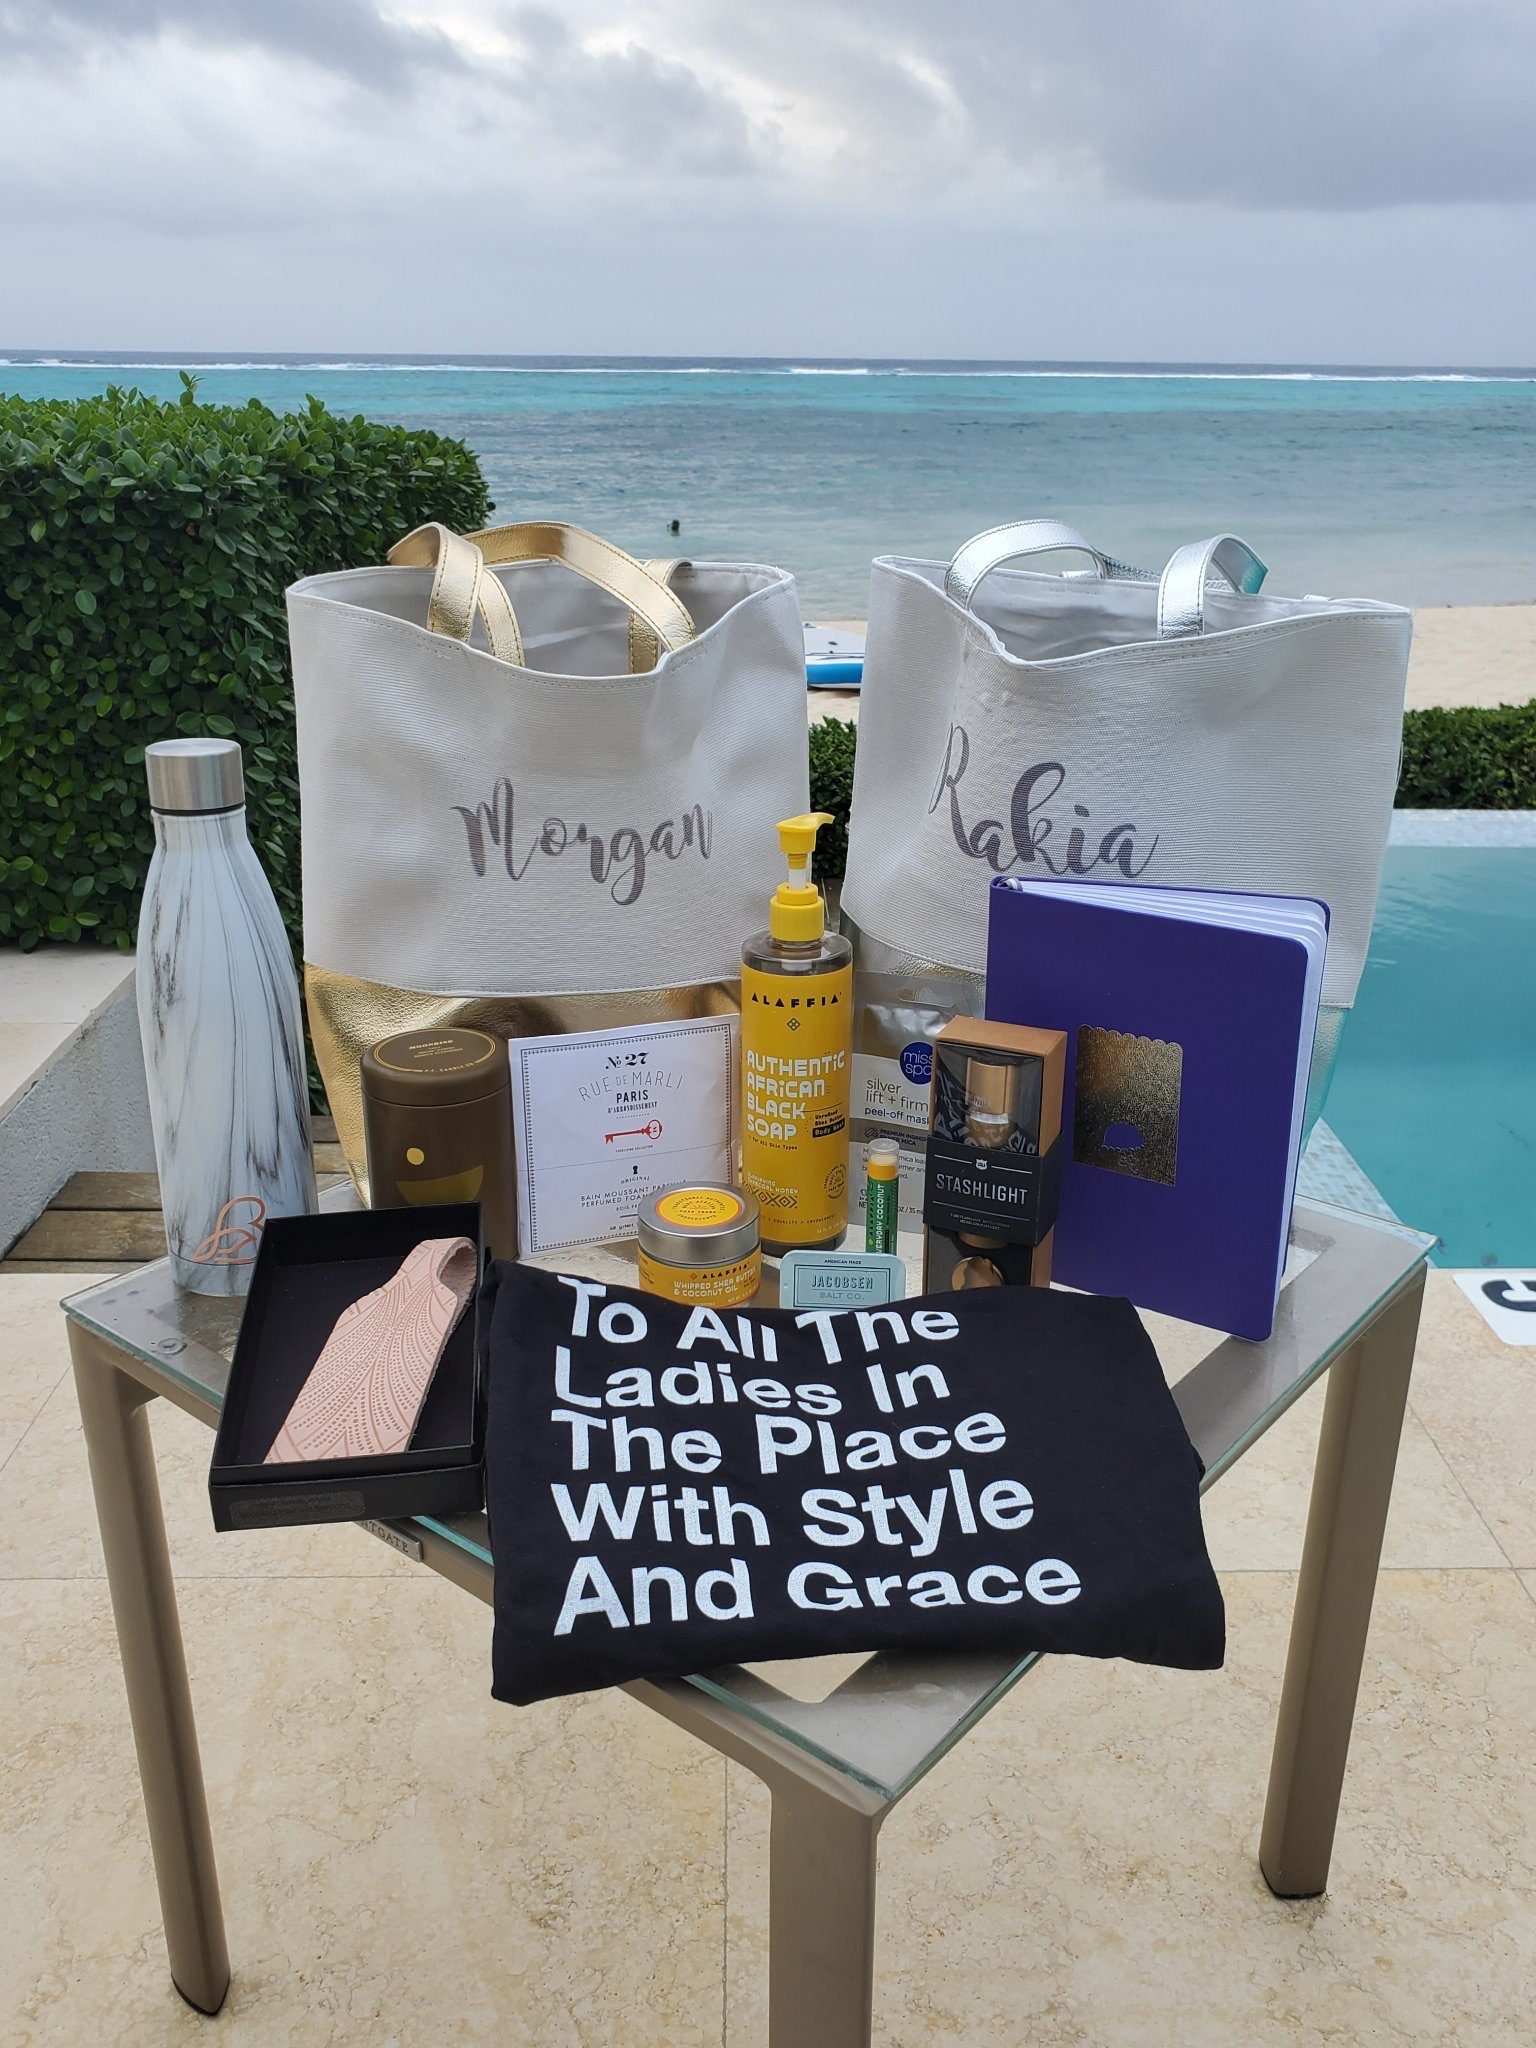 Several tote bags and beauty products sitting on a table outside.